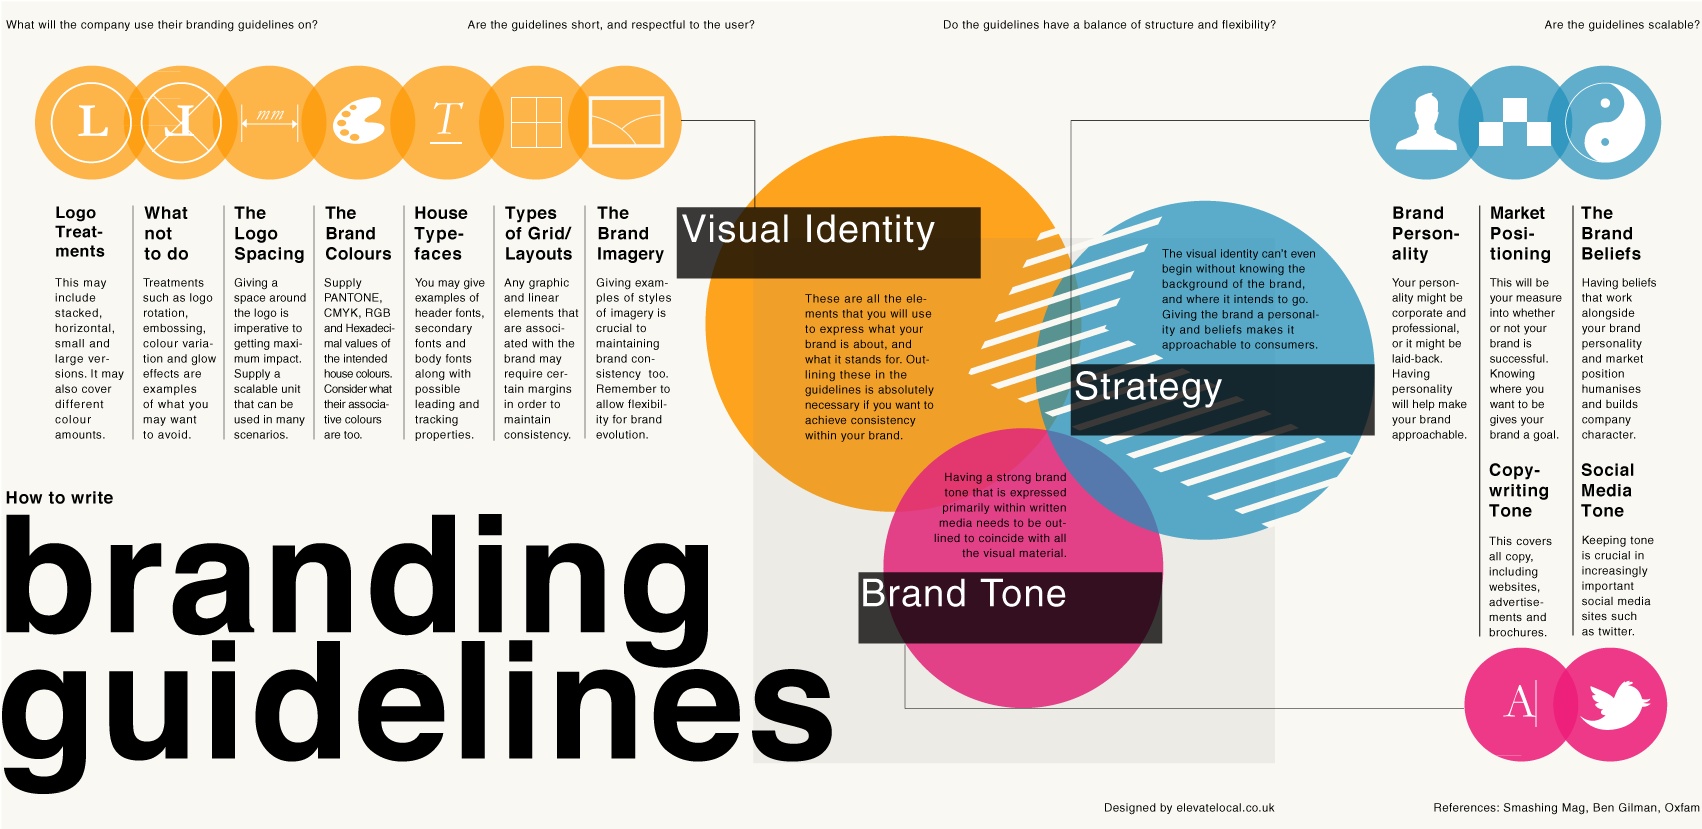 Let's Kill Branding Guidelines